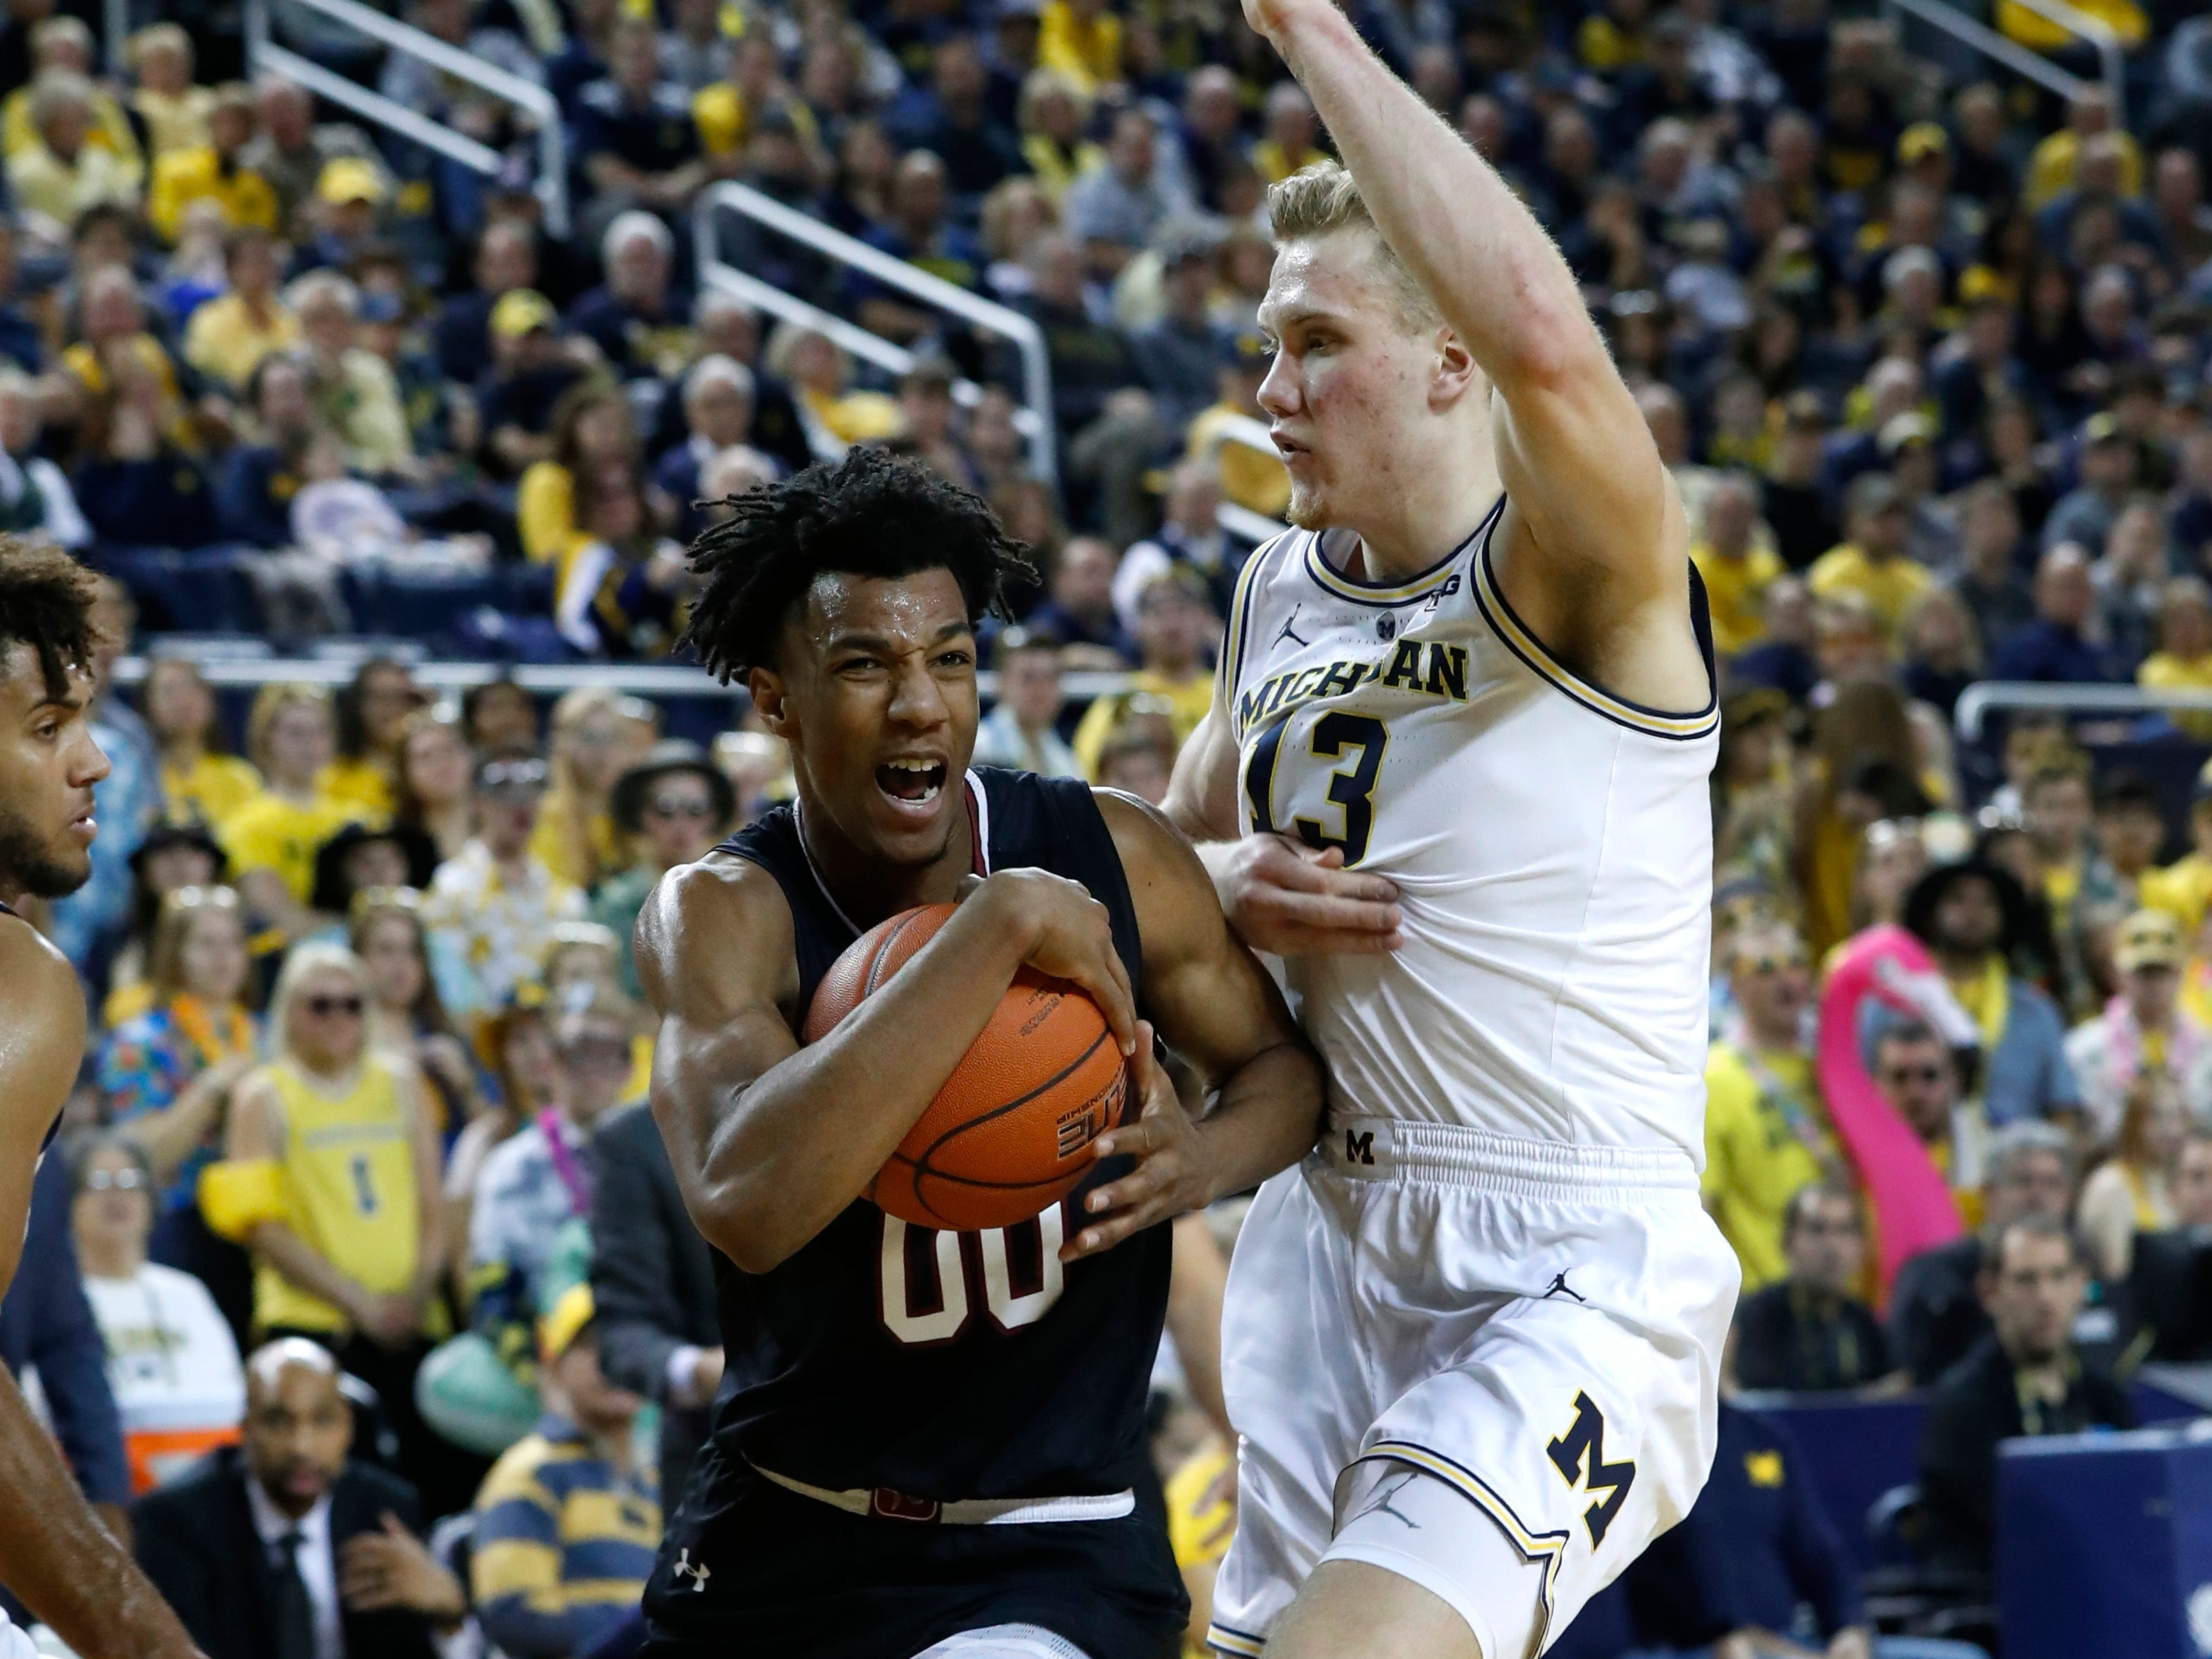 South Carolina guard A.J. Lawson (00) drives against Michigan forward Ignas Brazdeikis (13) in the first half.